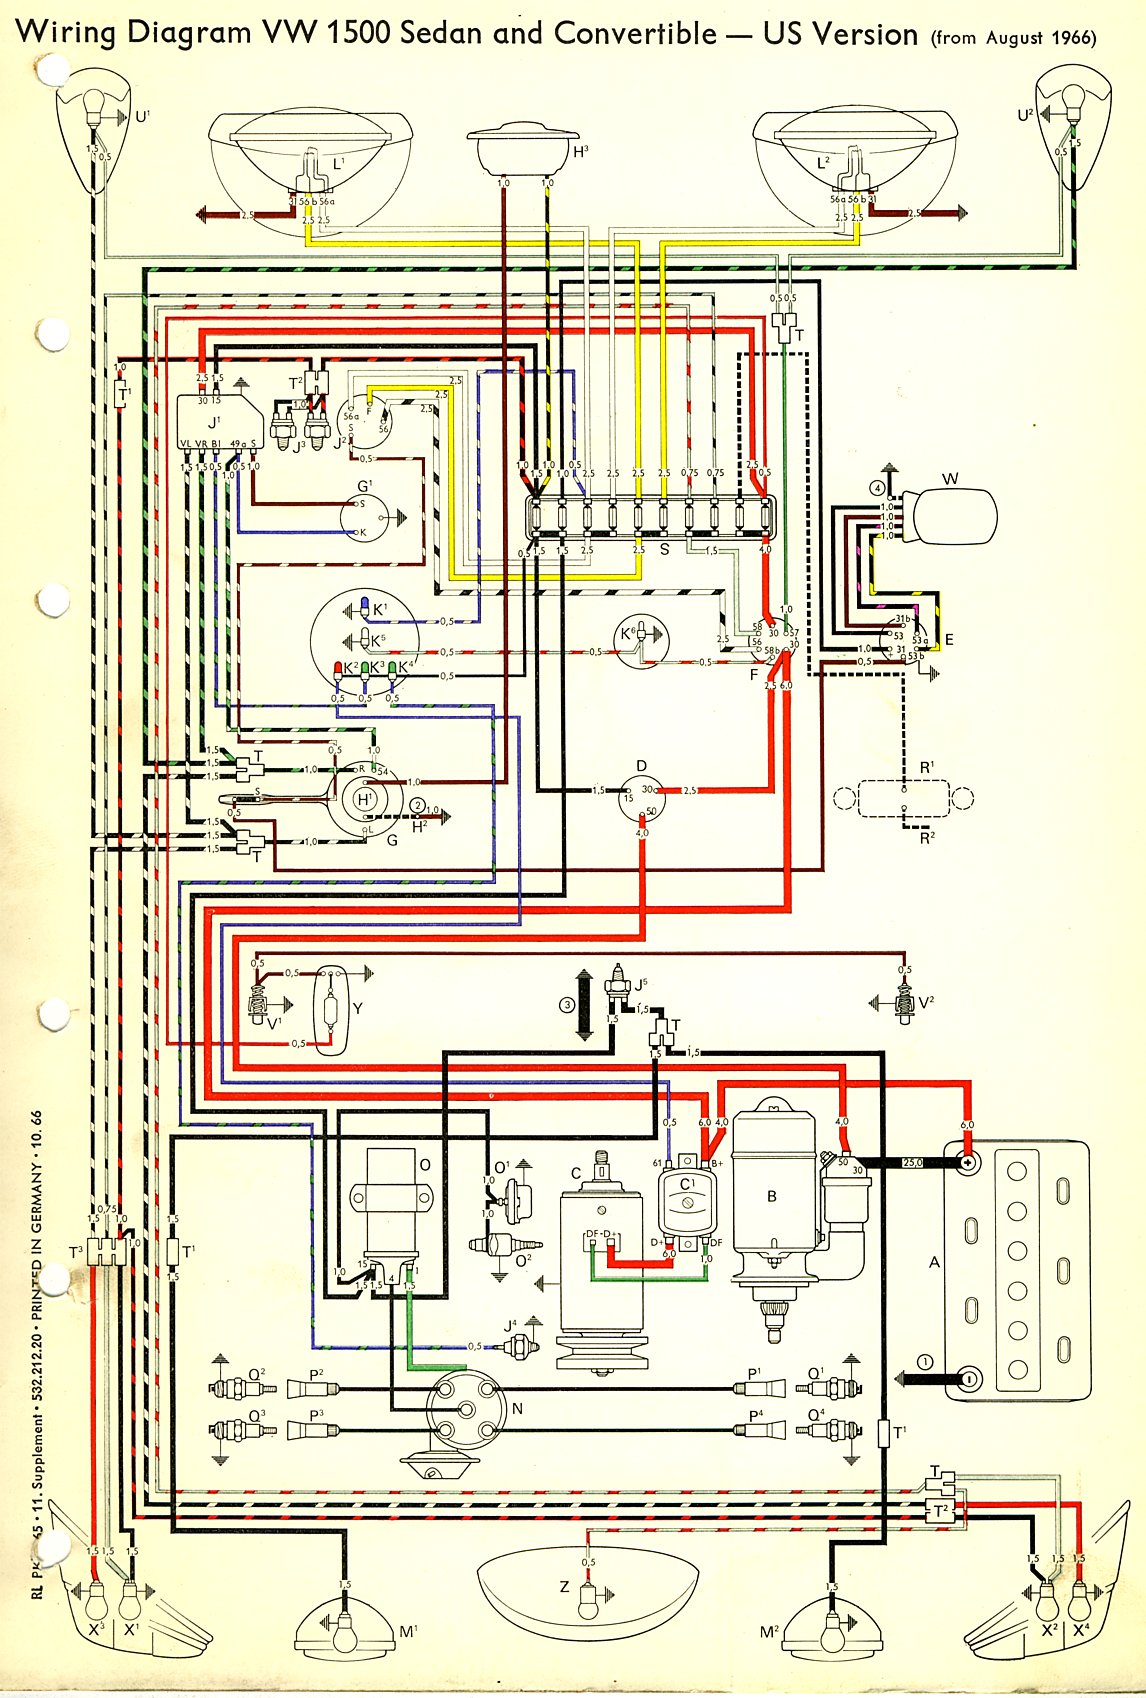 71 Chevy Suburban Wiring Diagram Free Picture Library 1966 Plymouth Get Image About Super Beetle Vw Bus